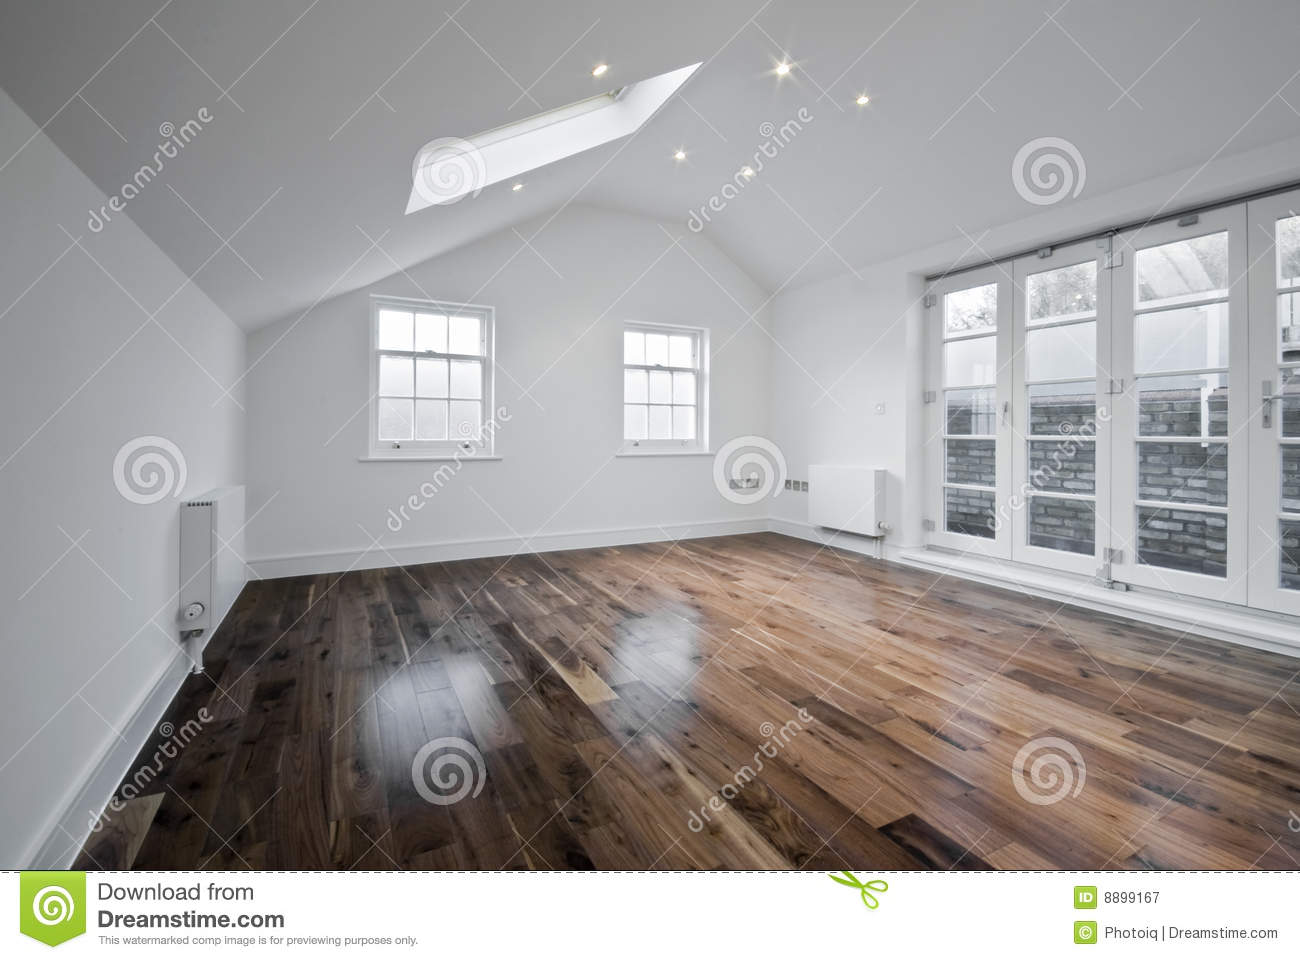 Loft Room With Roof Window Stock Image Image Of Laminate 8899167